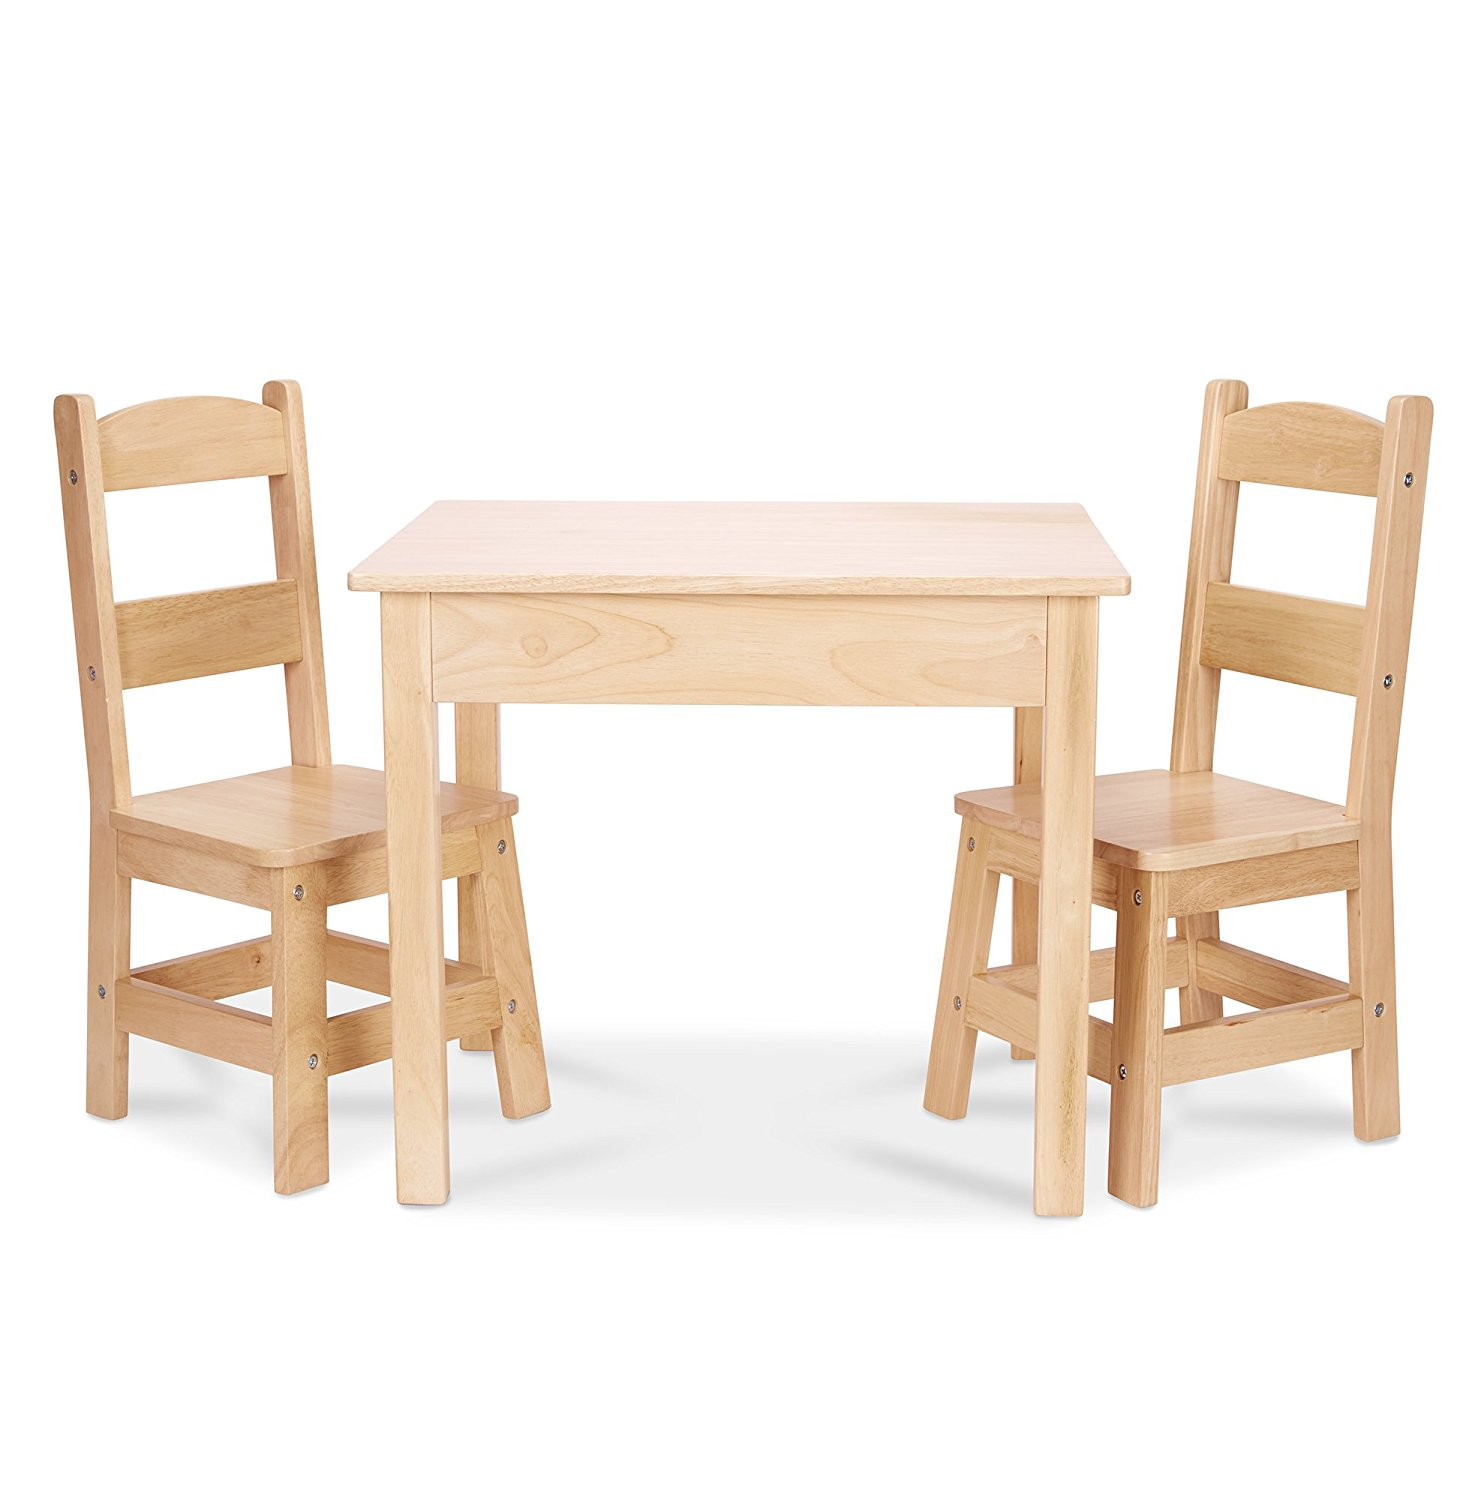 Melissa And Doug Table And Chairs Melissa And Doug Solid Wood Table And 2 Chairs Set Light